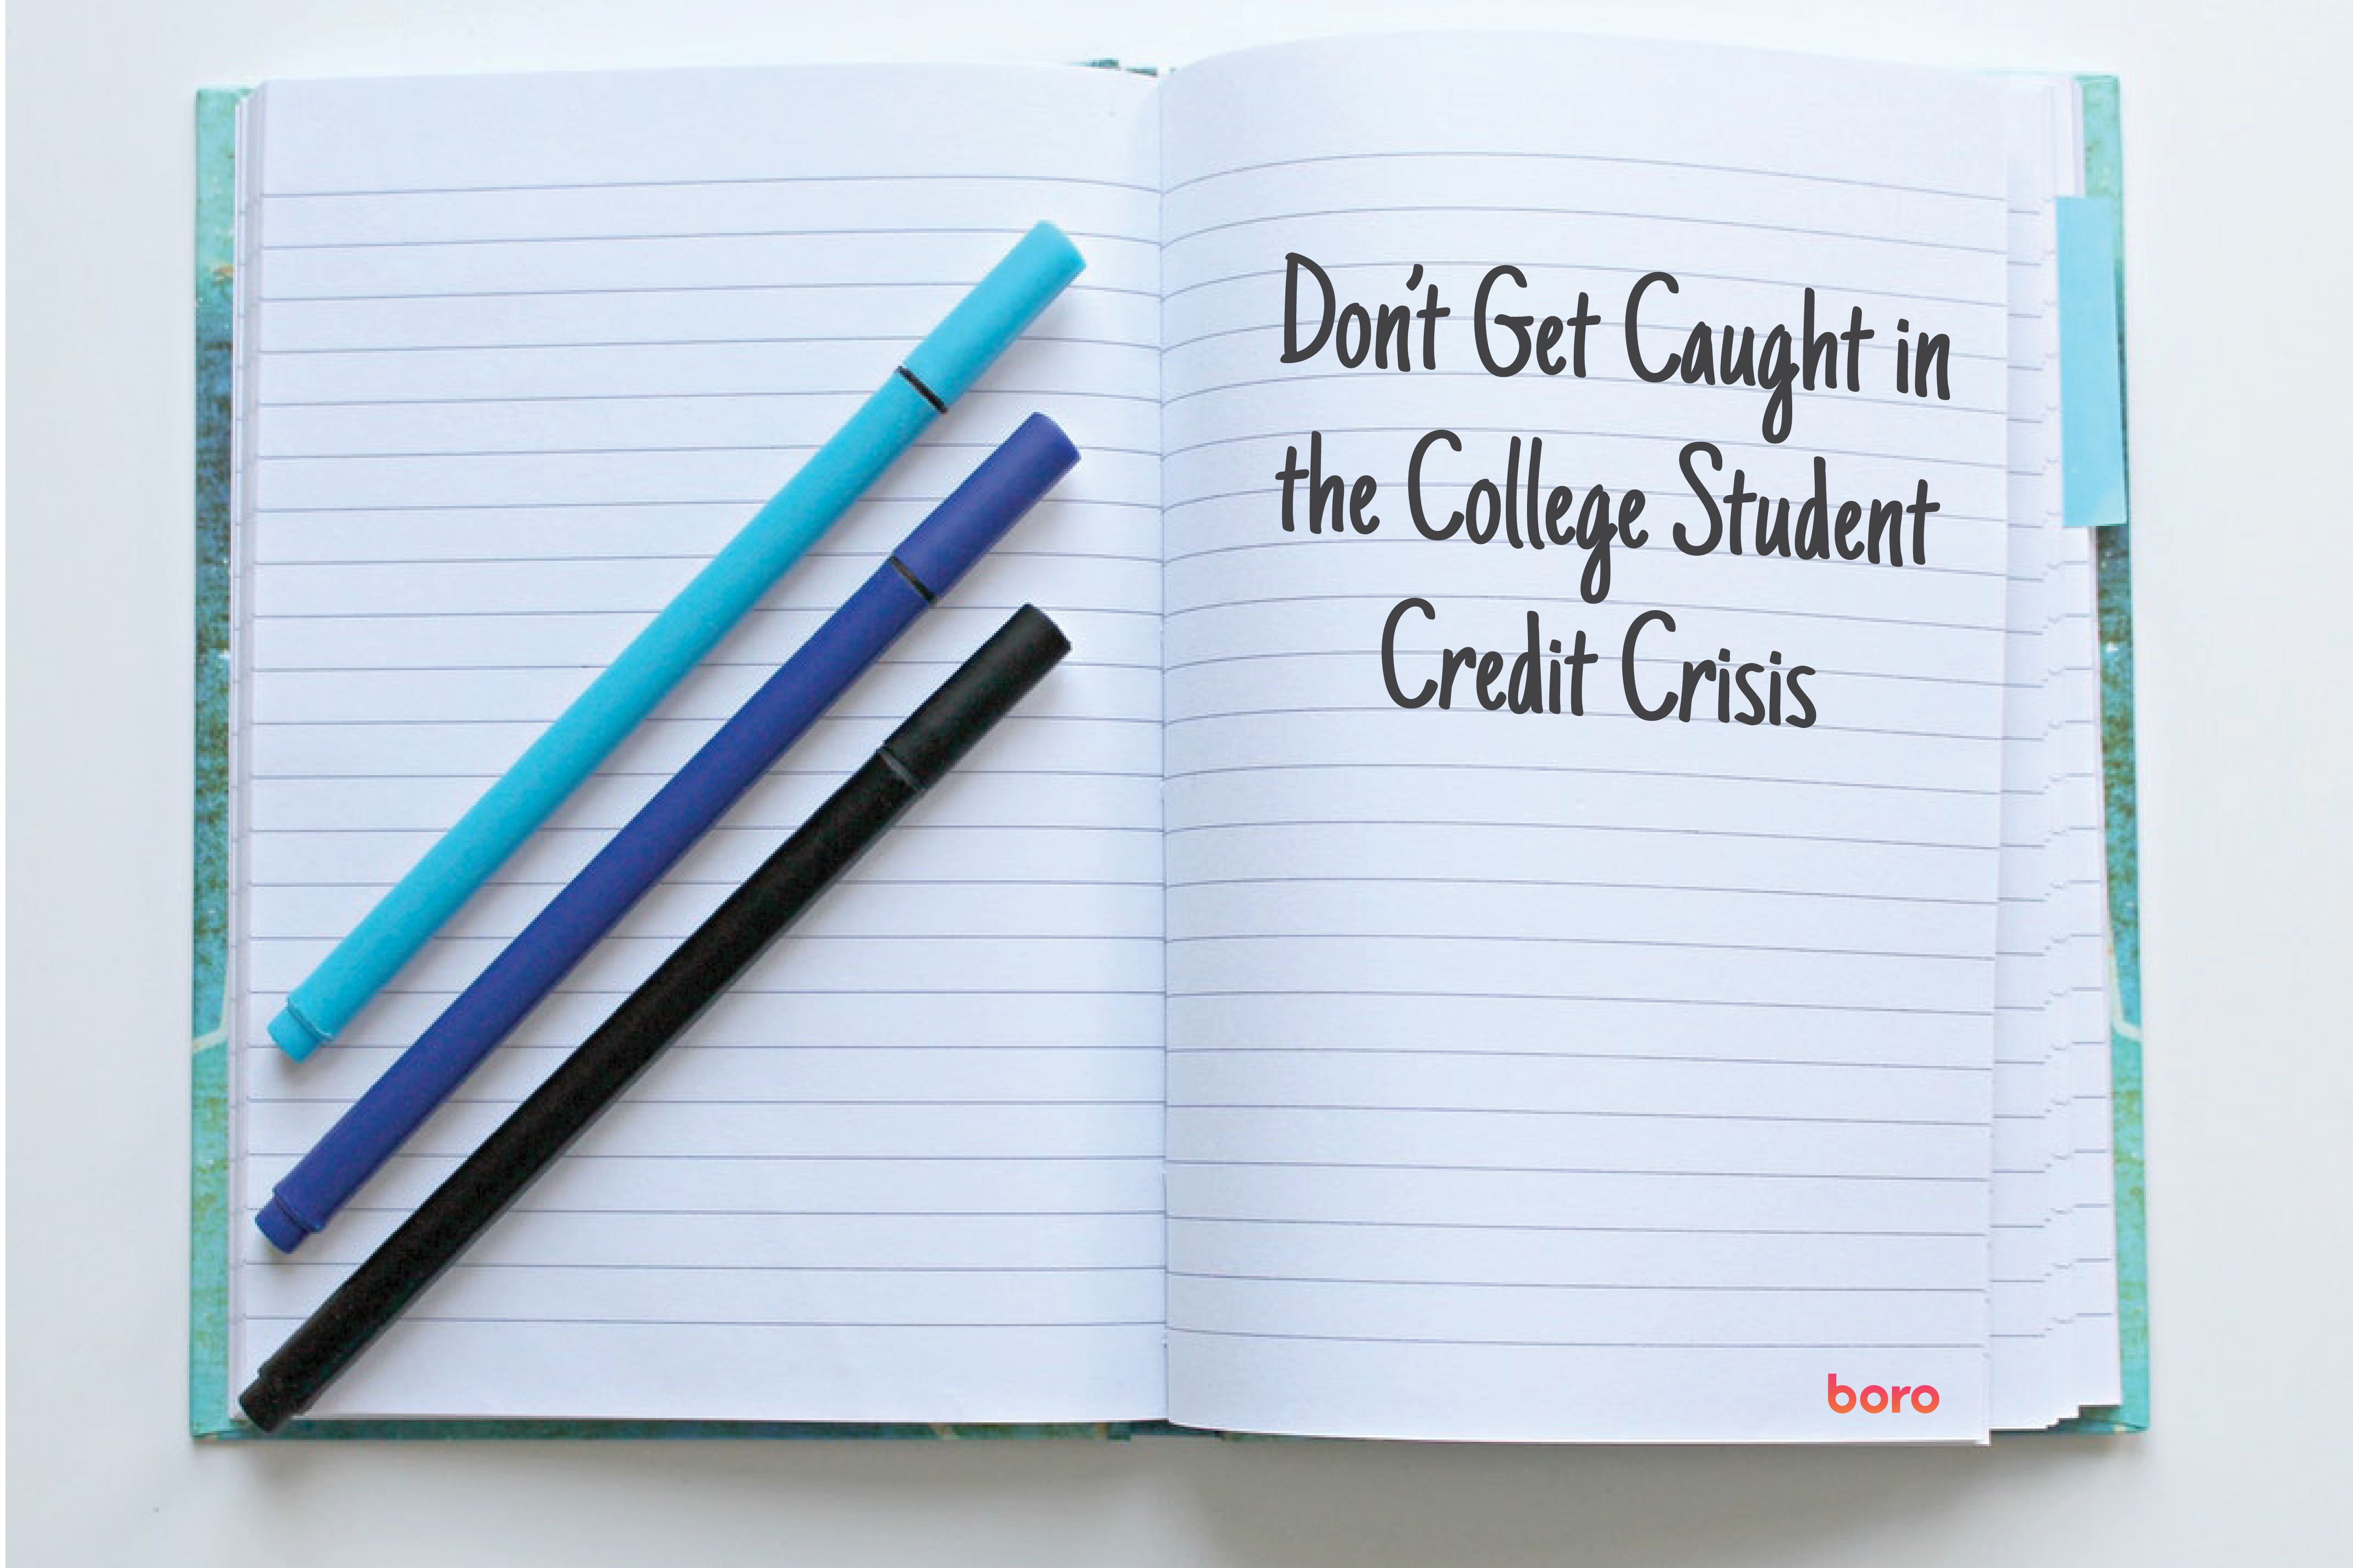 Don't Get Caught in the College Student Credit Crisis